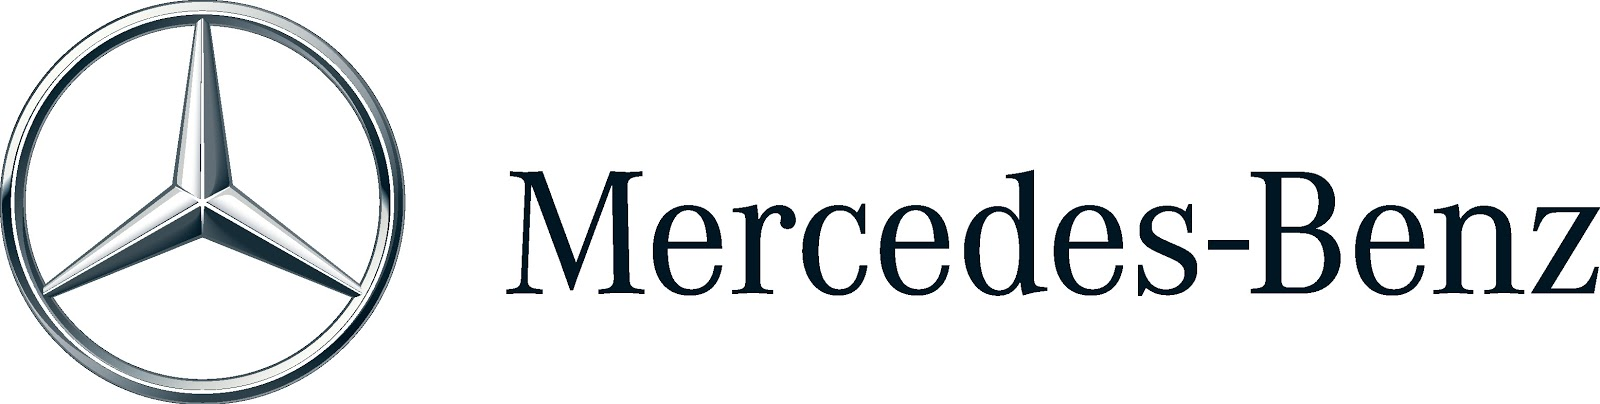 Mercedes benz logo 2013 geneva motor show for Mercedes benz font download